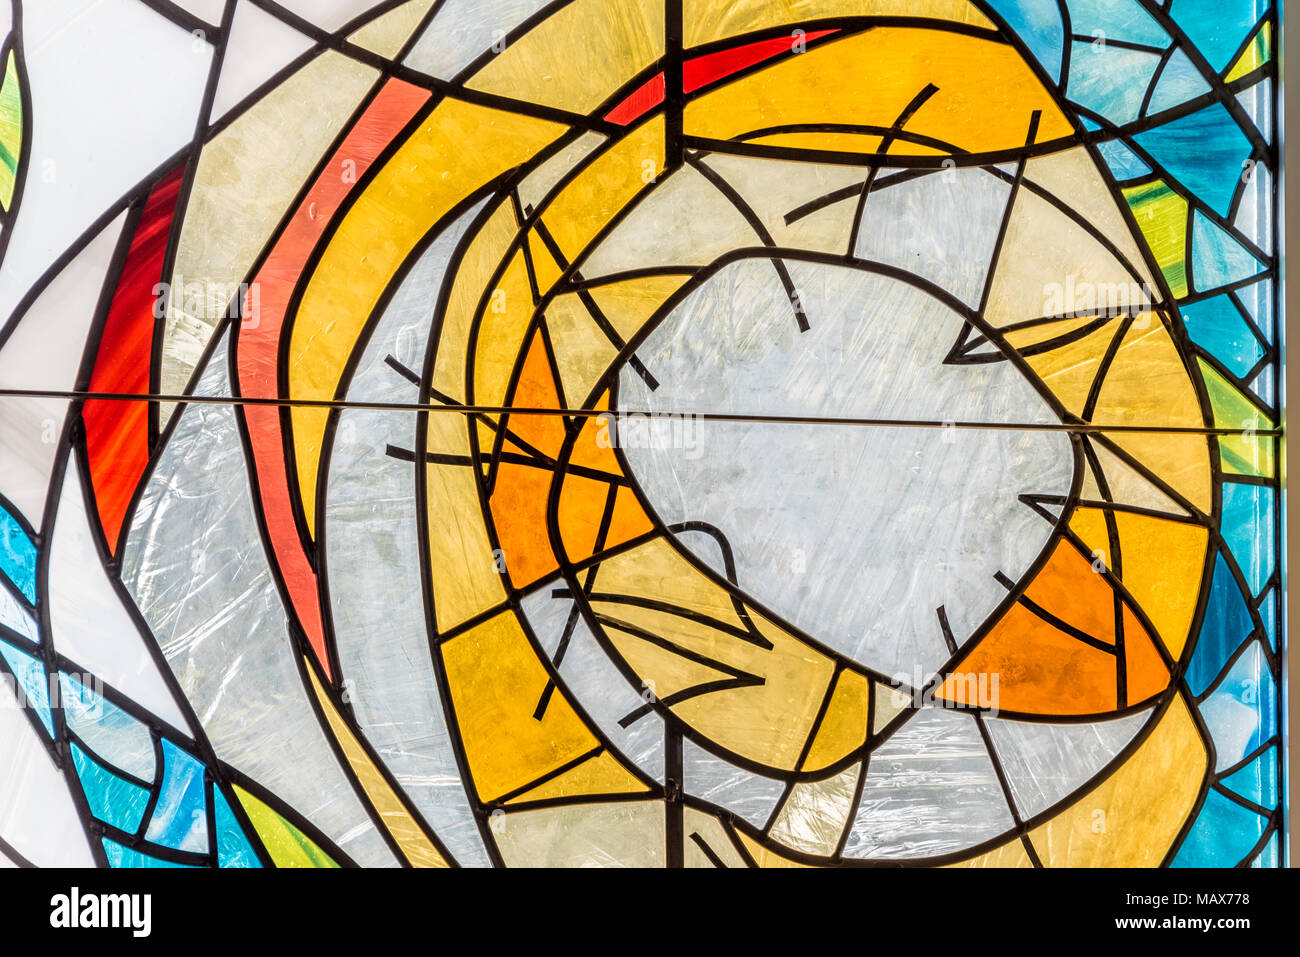 Colorful Abstract Design Of A Modern Stained Glass Window In A Close